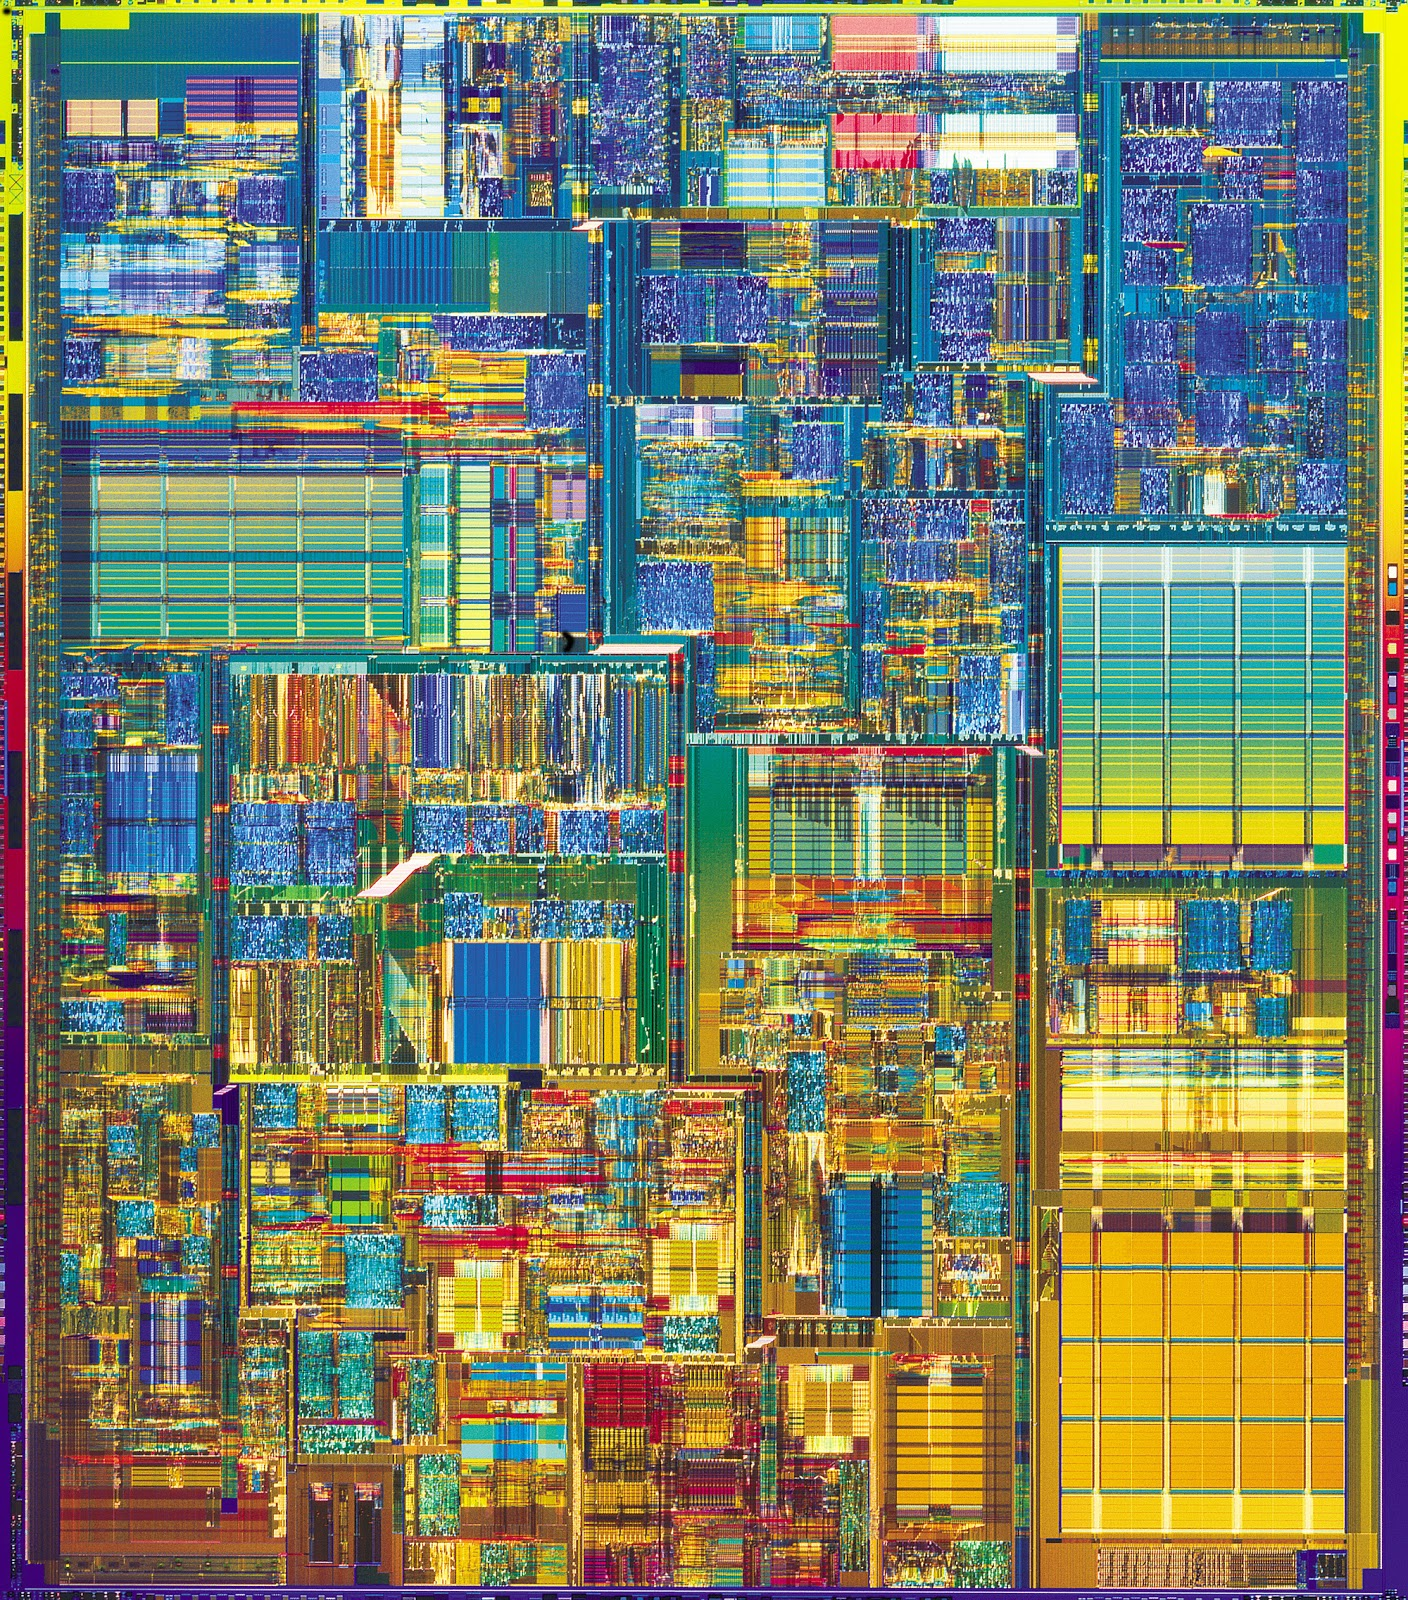 Pentium Architecture 3 Block Diagram Pinenns Electronics Very Short Brief About Some Consumer Intel 1408x1600